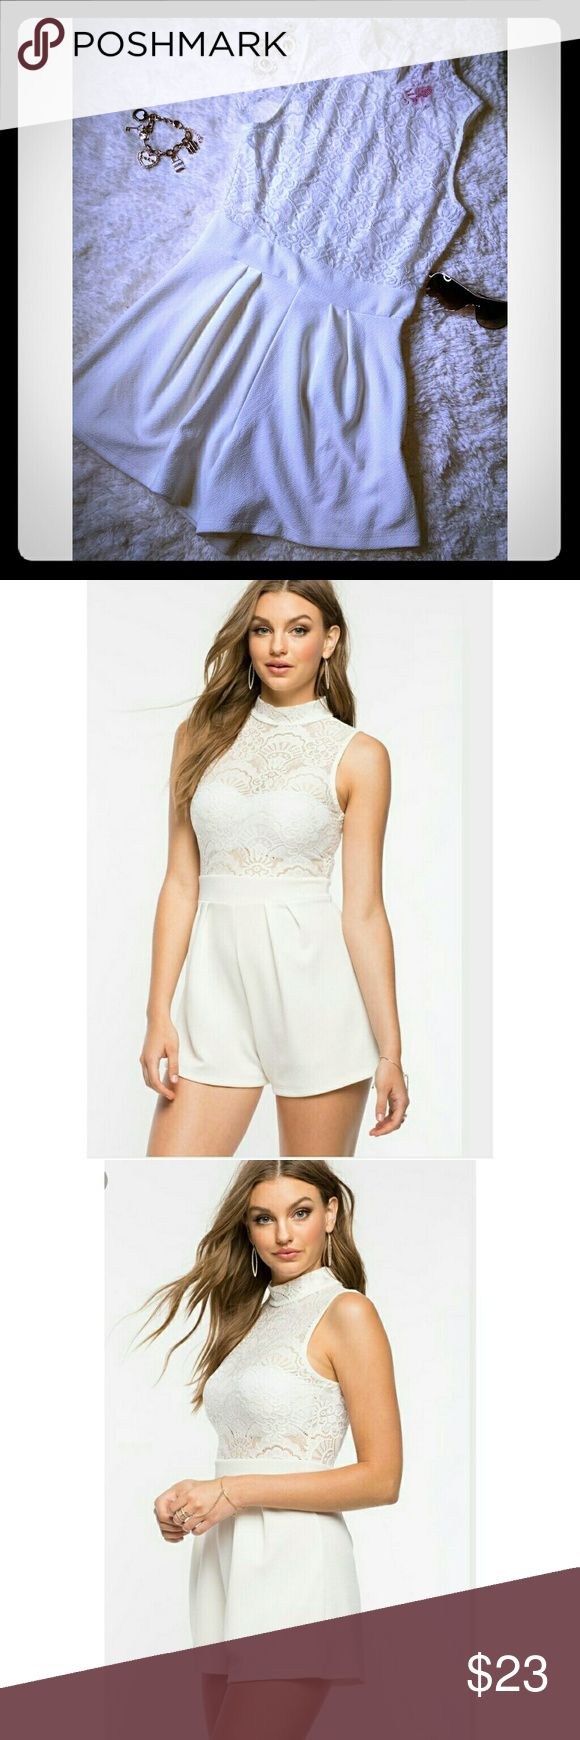 A'gaci White Lace Top Romper Size Medium Brand new with tags A'gaci White Kyle lace romper size Medium. Zips in back, top is see thru but will look cute with bra or bandeau top under. Perfect with heels or wedges for spring or summer ?? a'gaci Dresses Mini